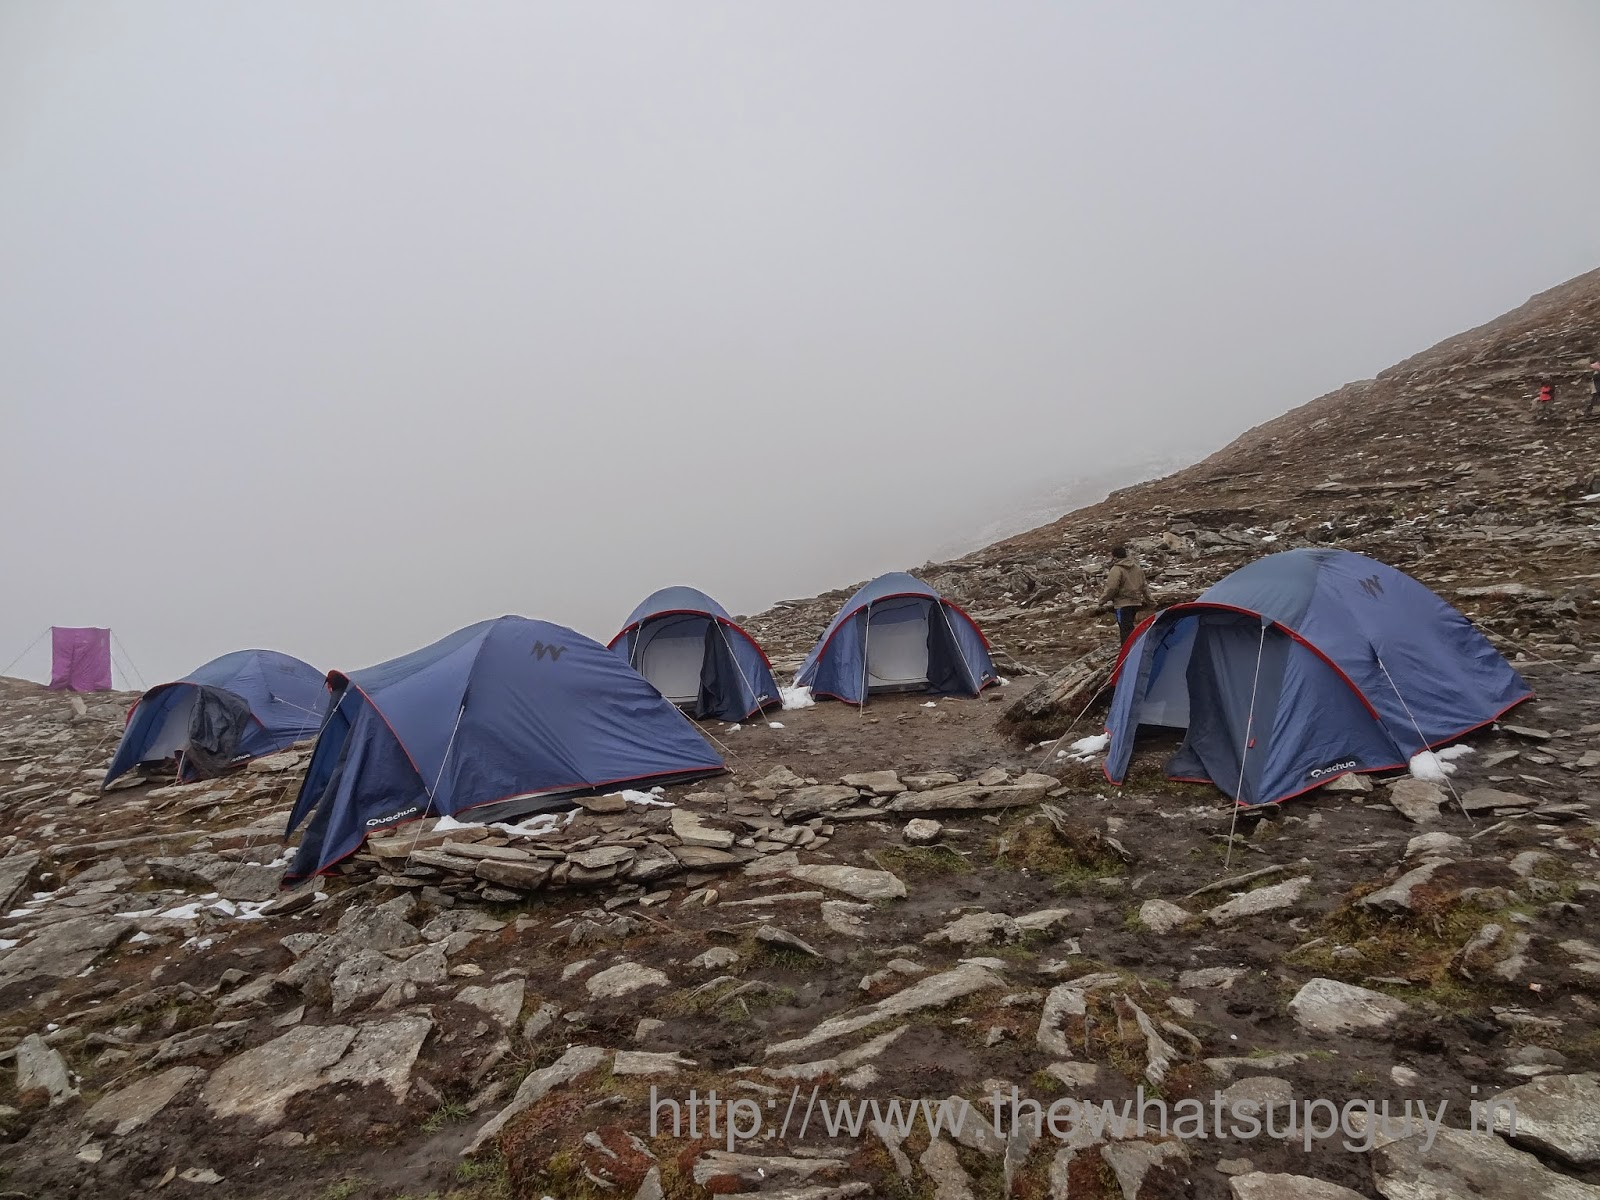 Tents Roopkund Trek With India Hikes Day 4